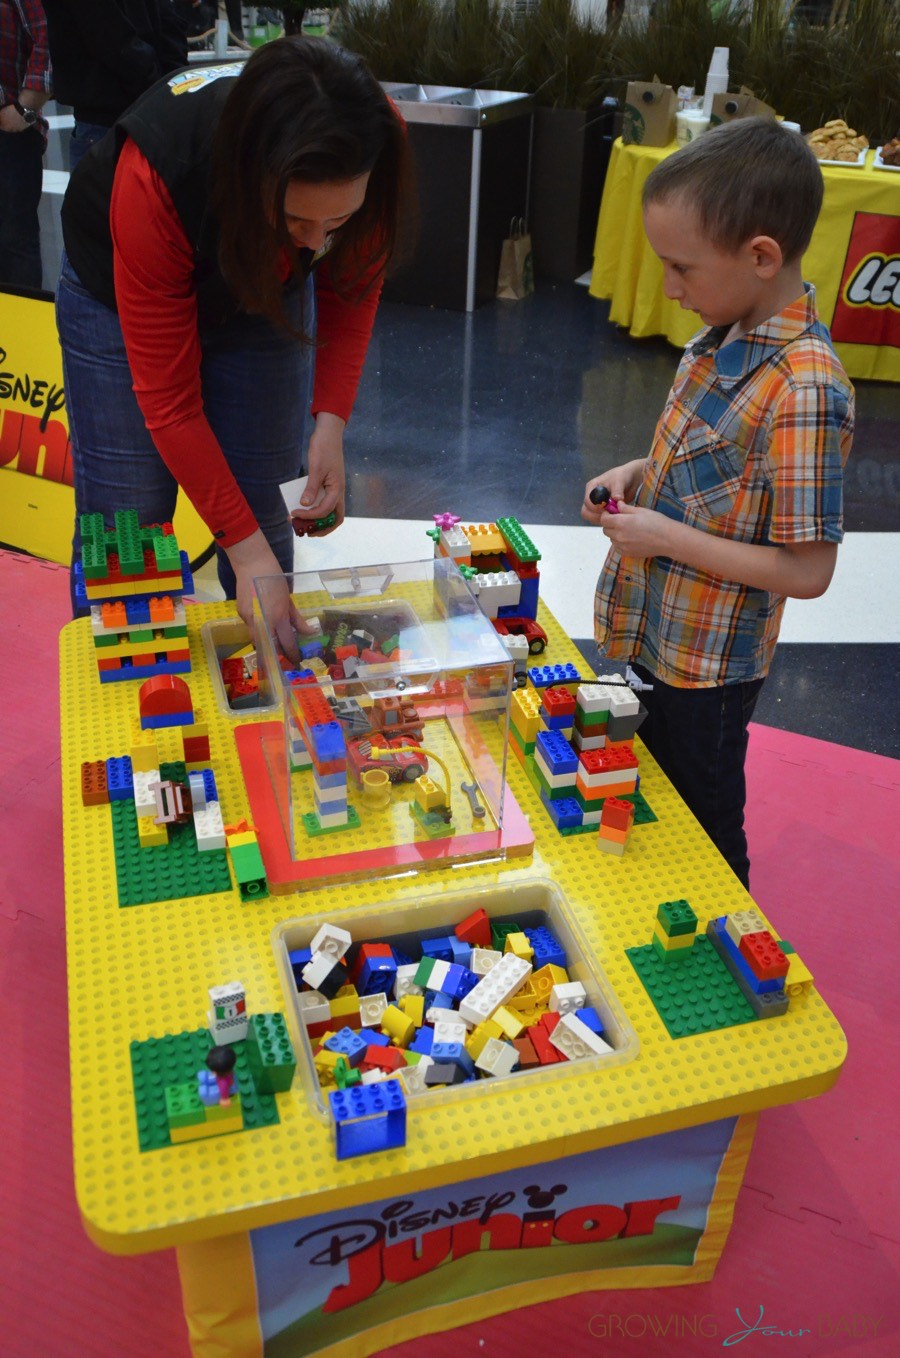 Magic Of Play Lego Duplo Mall Booth Creating New Things